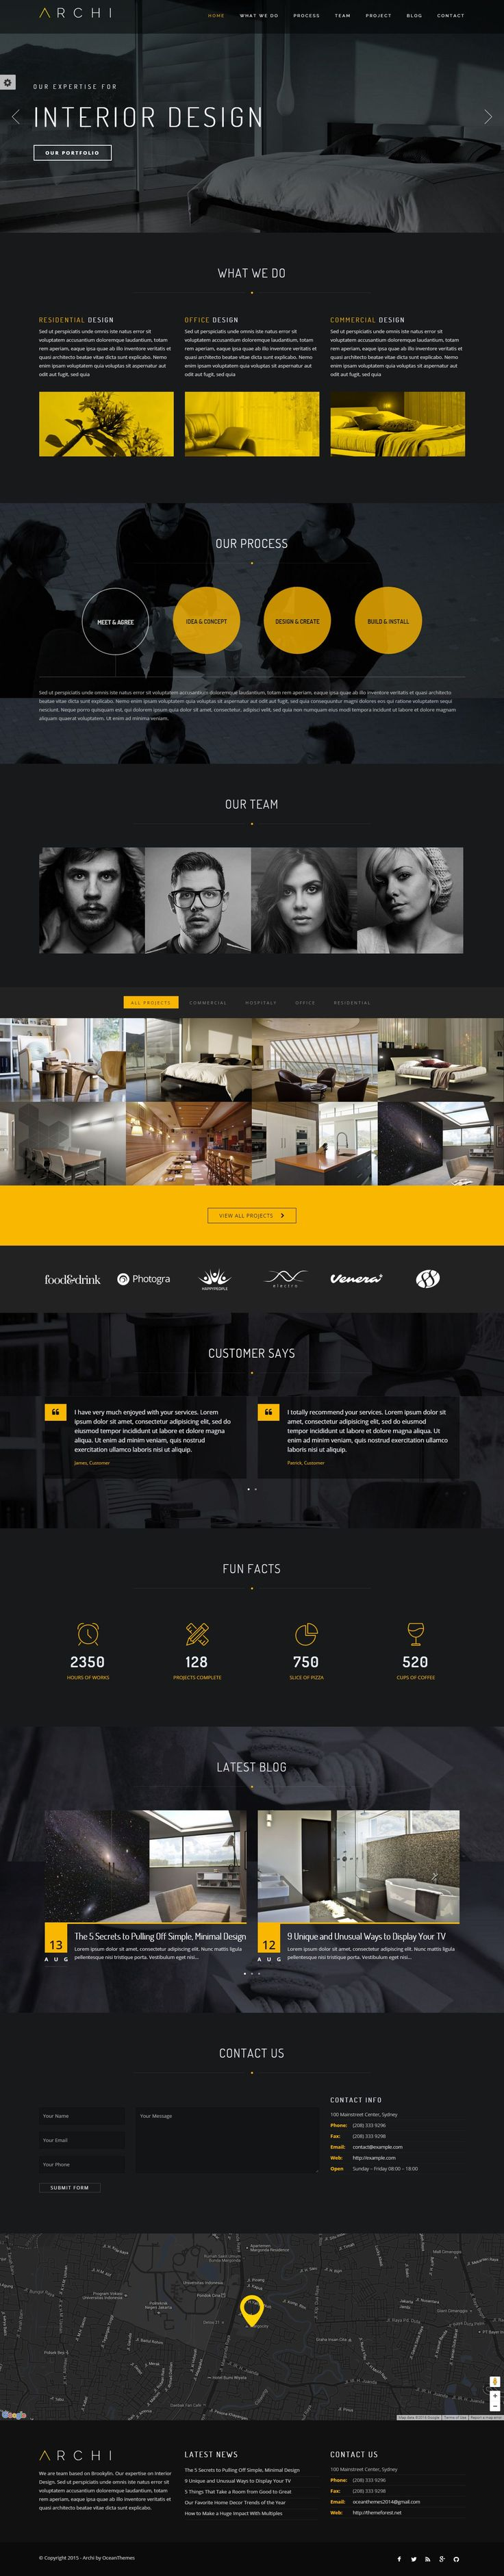 Archi has beauty design and bunch of features to make your website stand out of crowd. Powered by HTML 5, CSS 3, jQuery with flexibility of Bootstrap 3. Get Archi now! #Interior #design #Architect